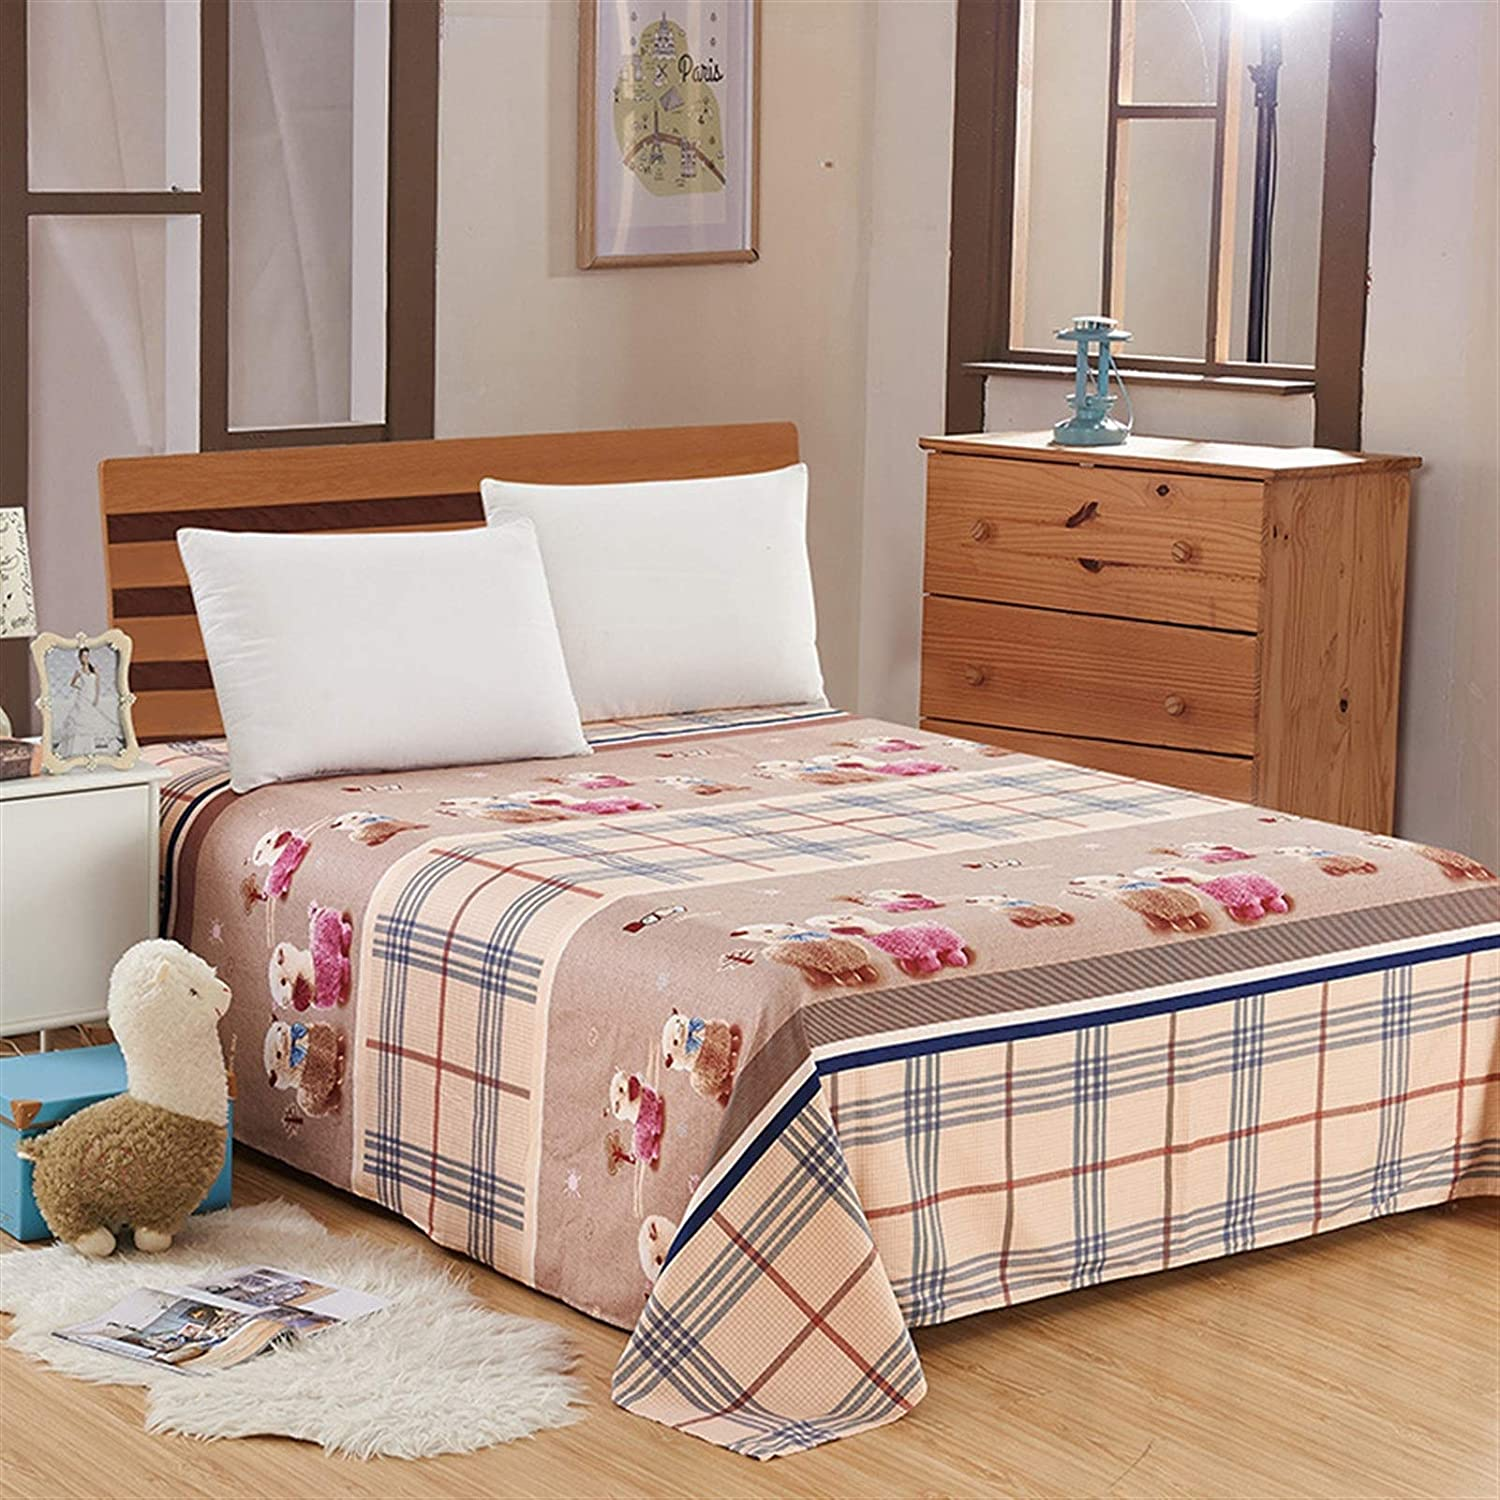 WSZMD Limited price Dyed Flat 100% quality warranty Bed Sheet Single Shee Bedding Brushed